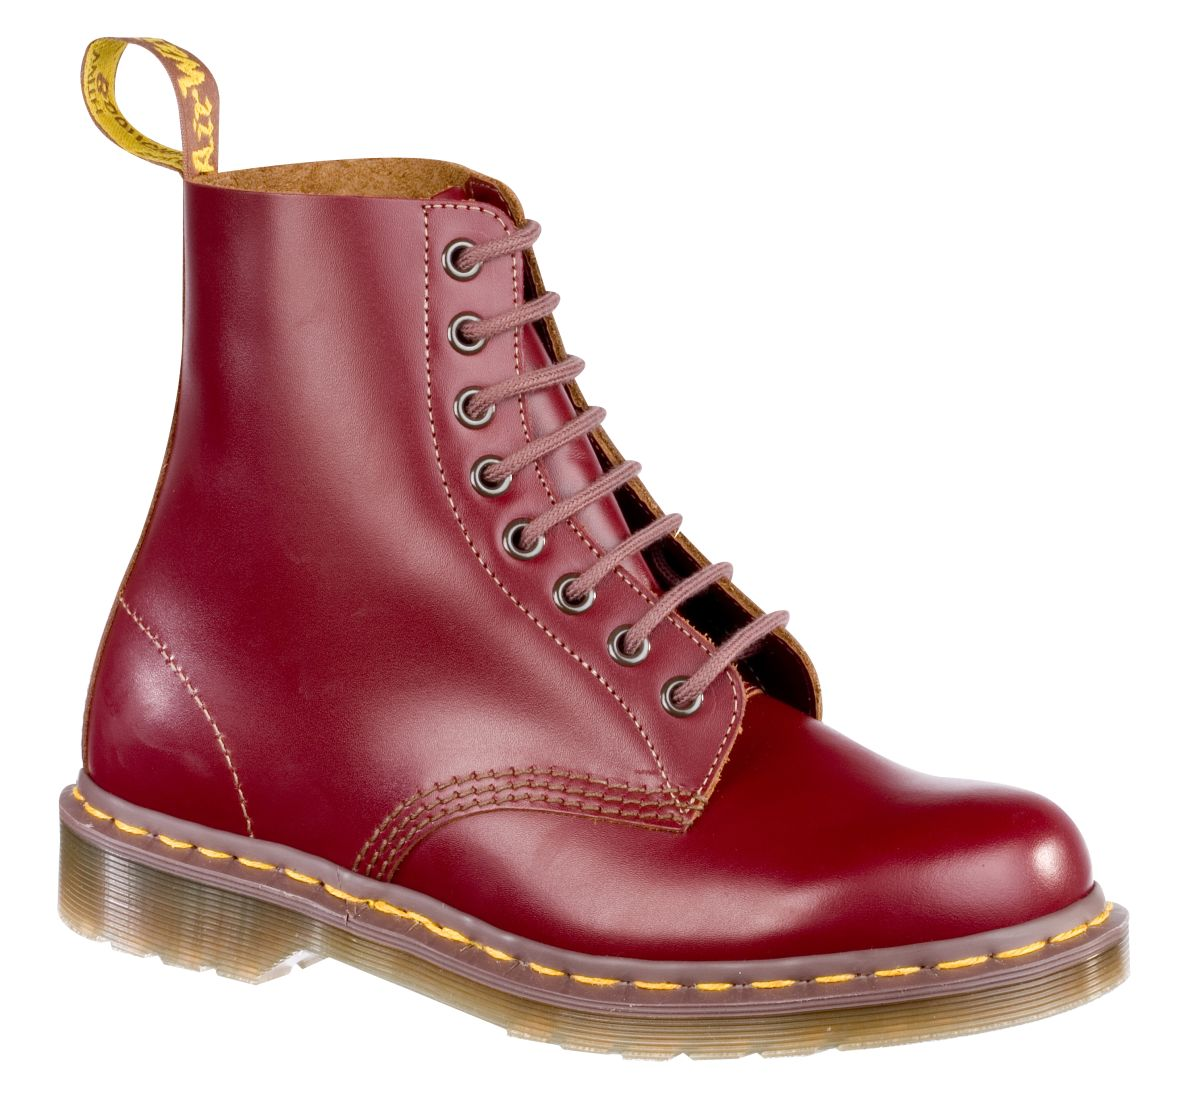 Dr Martens Vintage 1460 8 Eye Boot Shoes International